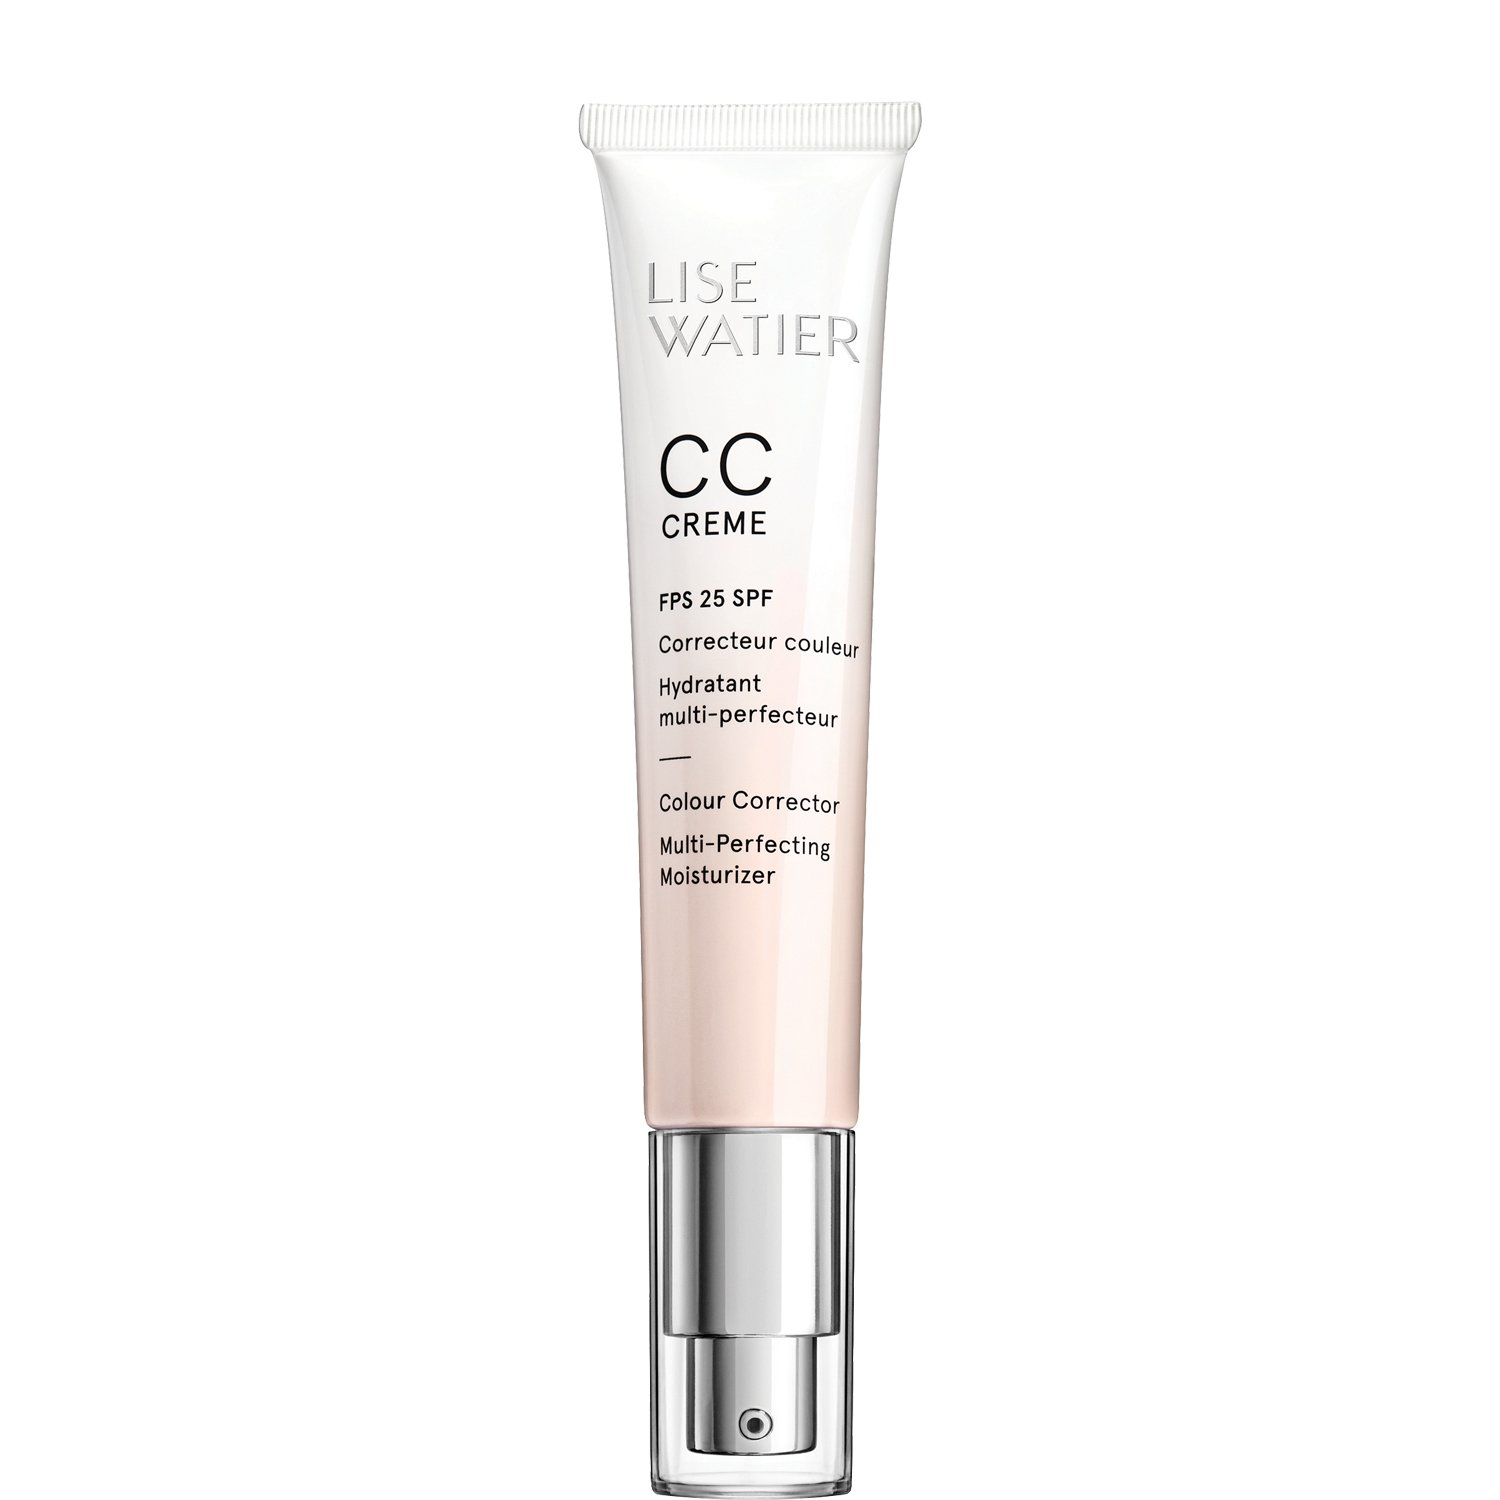 Lise Watier CC Crème Colour Corrector Multi-Perfecting Moisturizer - Light Neutral